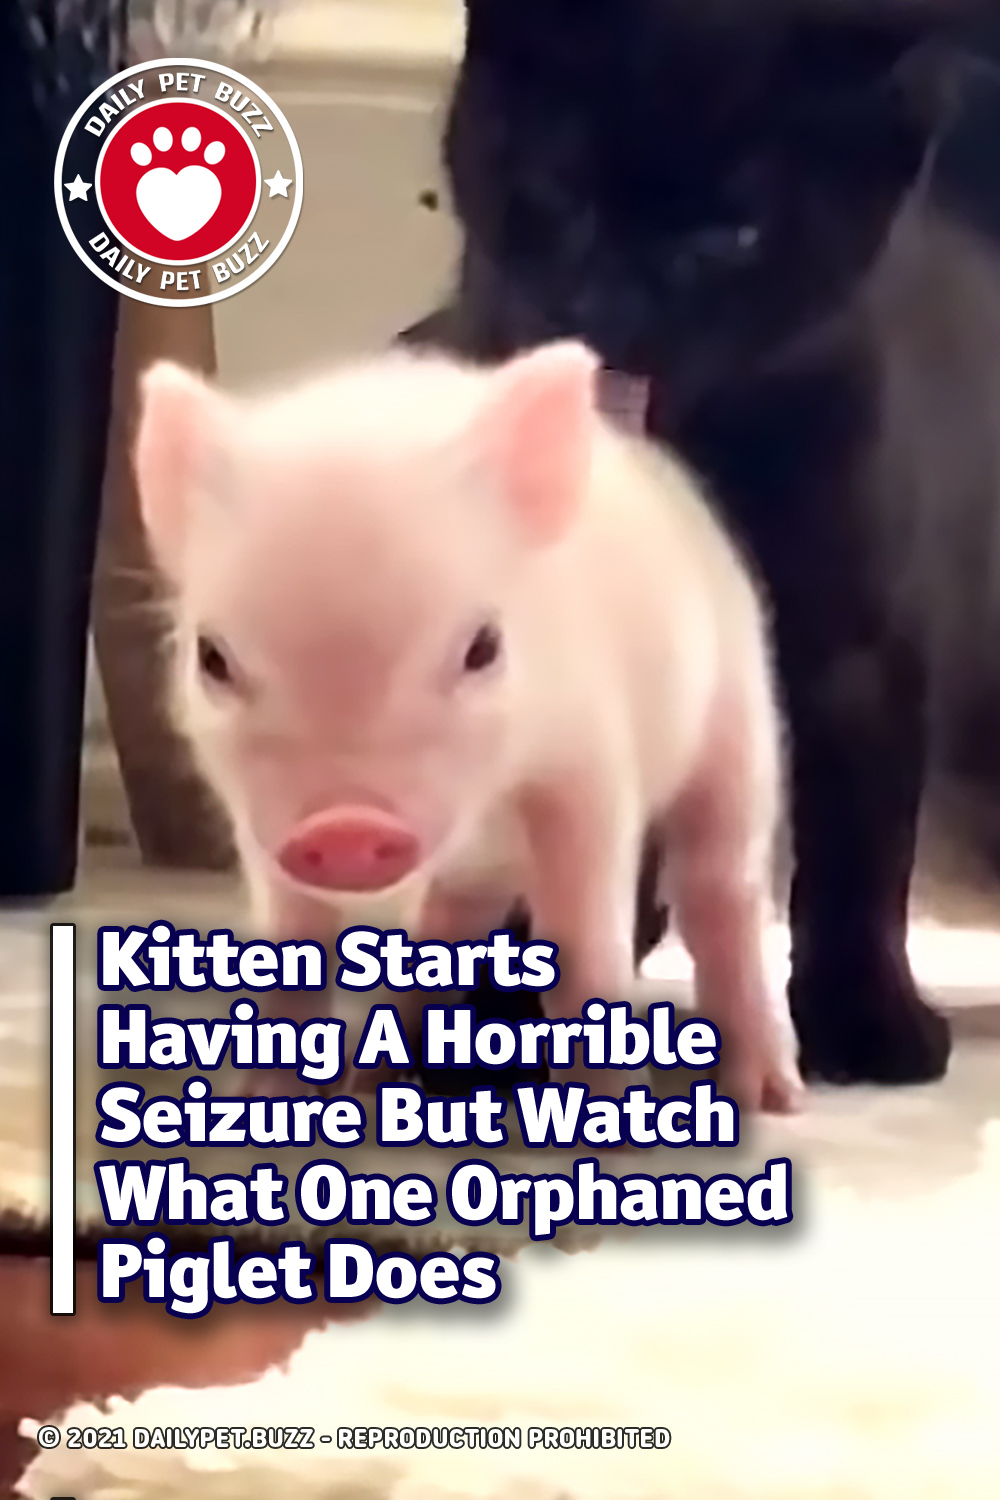 Kitten Starts Having A Horrible Seizure But Watch What One Orphaned Piglet Does